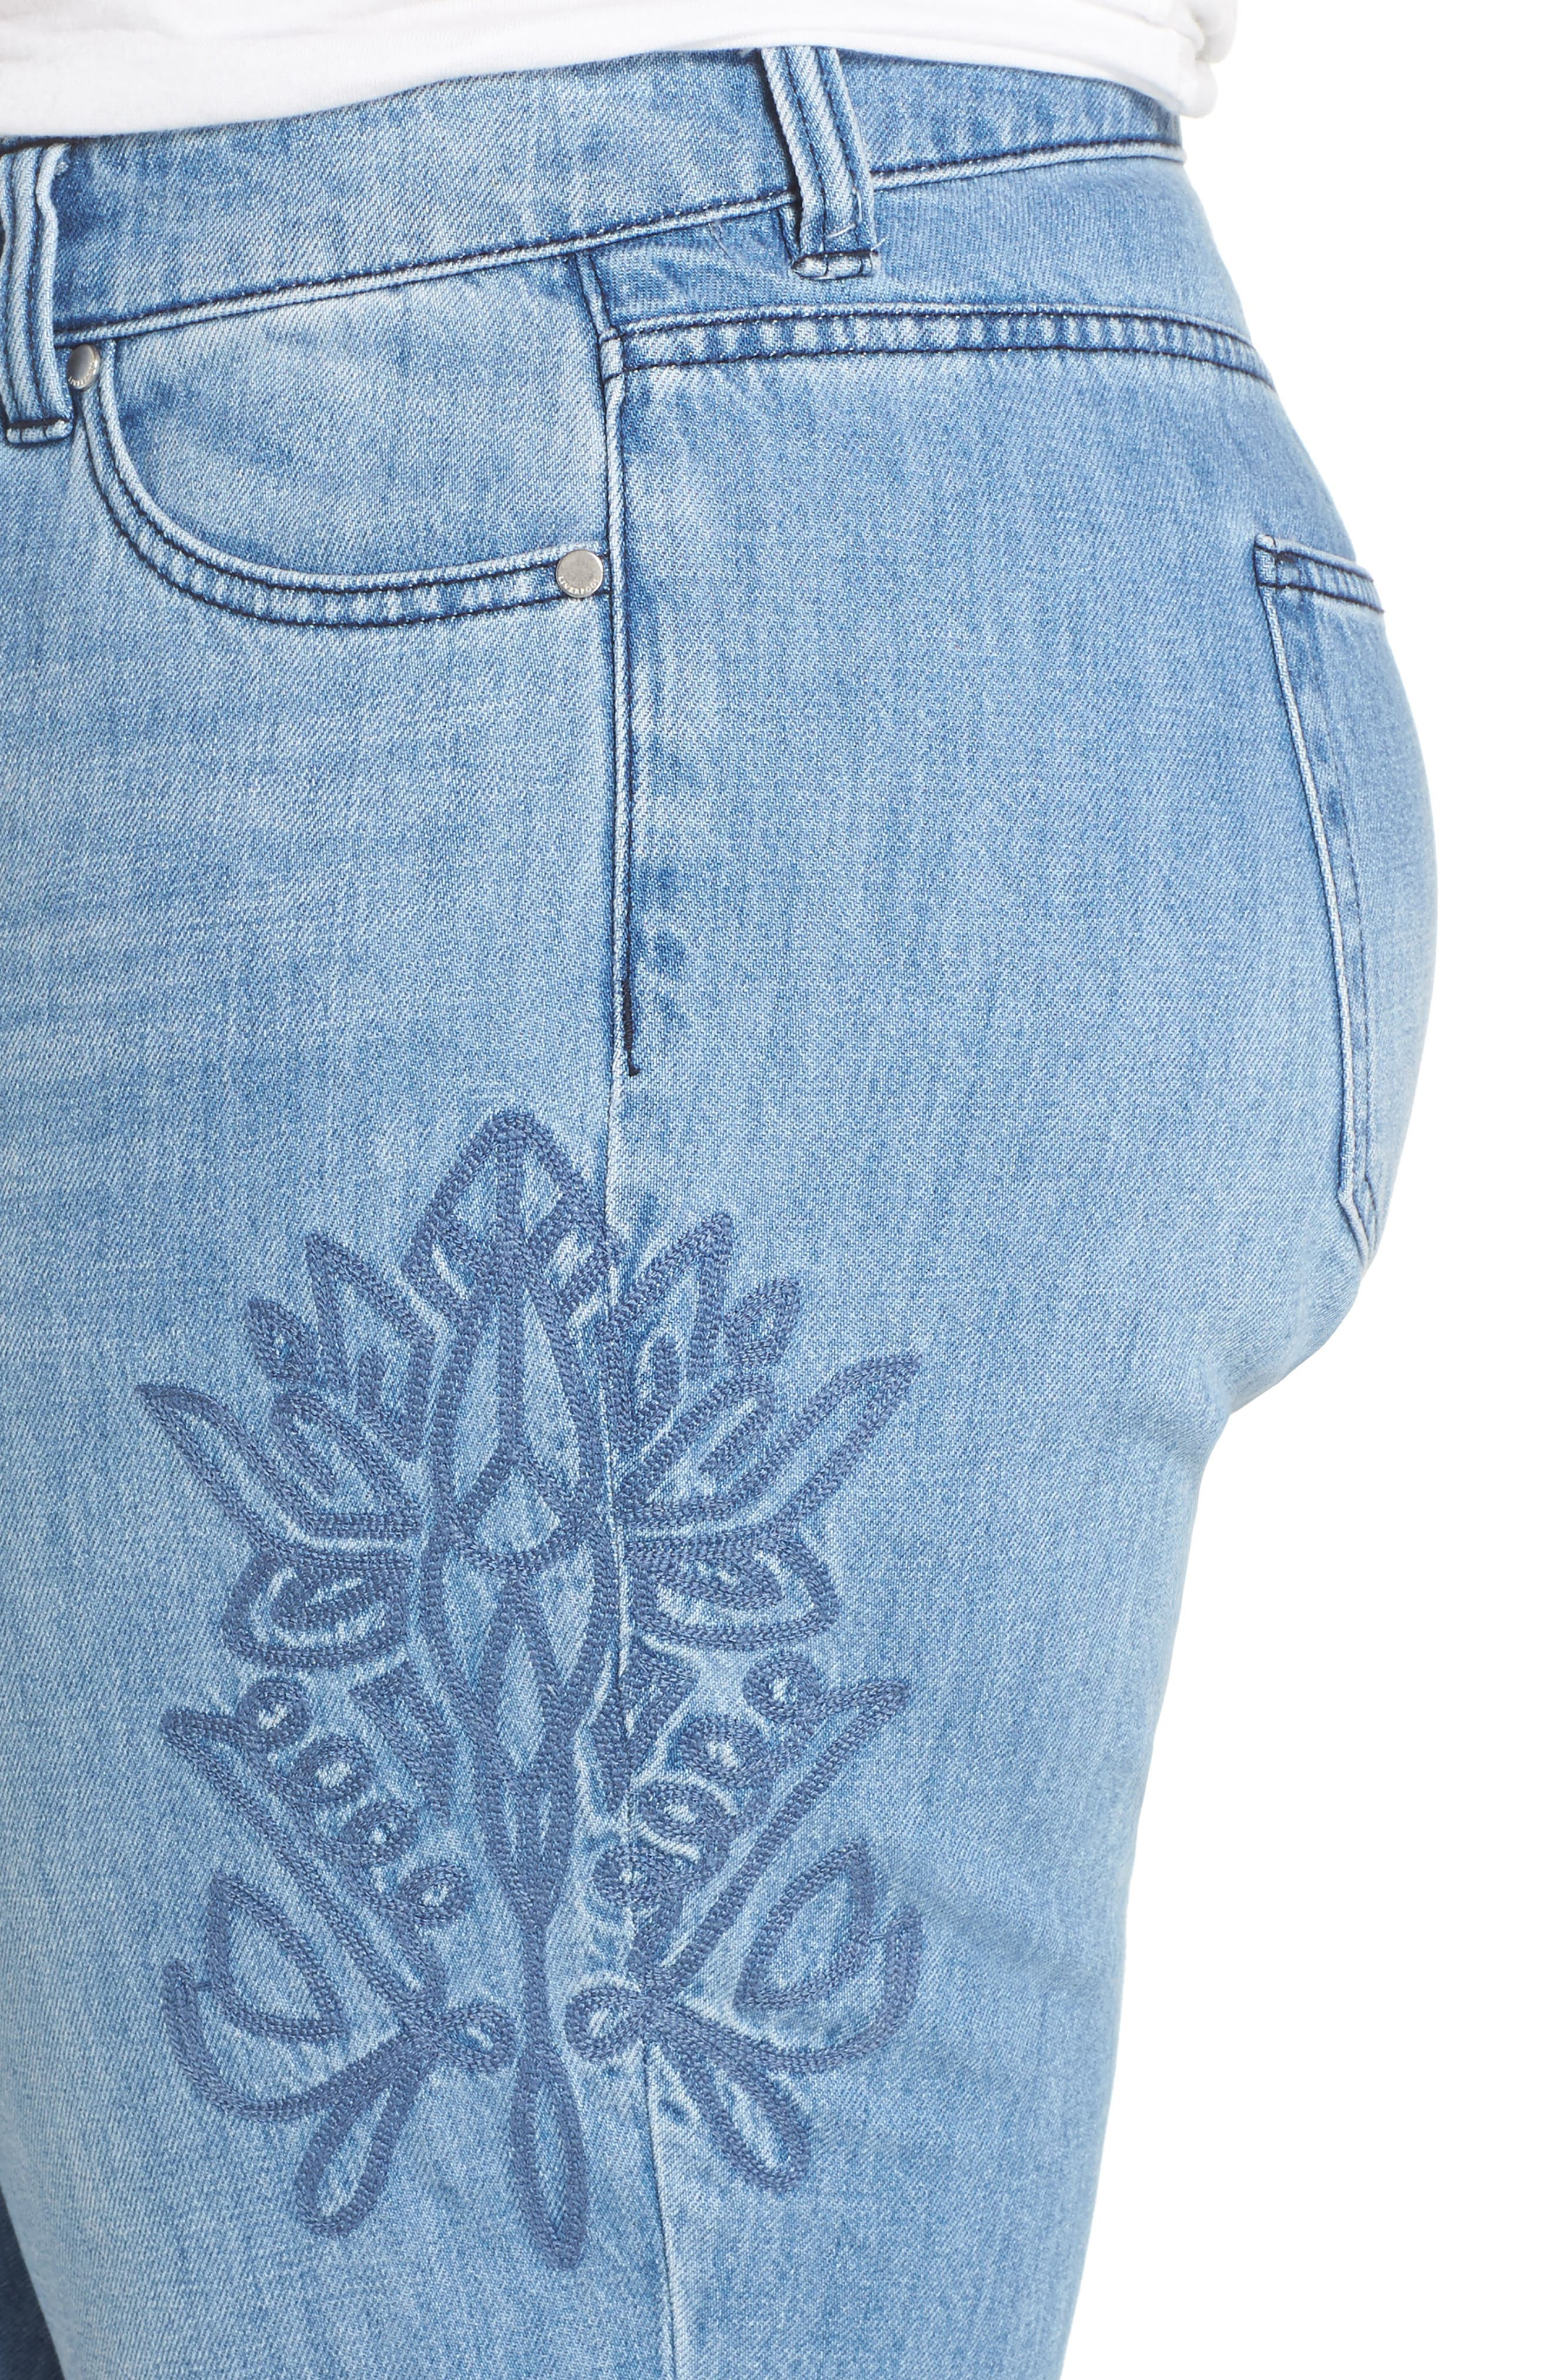 Cameron Crop Boyfriend Jeans,                             Alternate thumbnail 4, color,